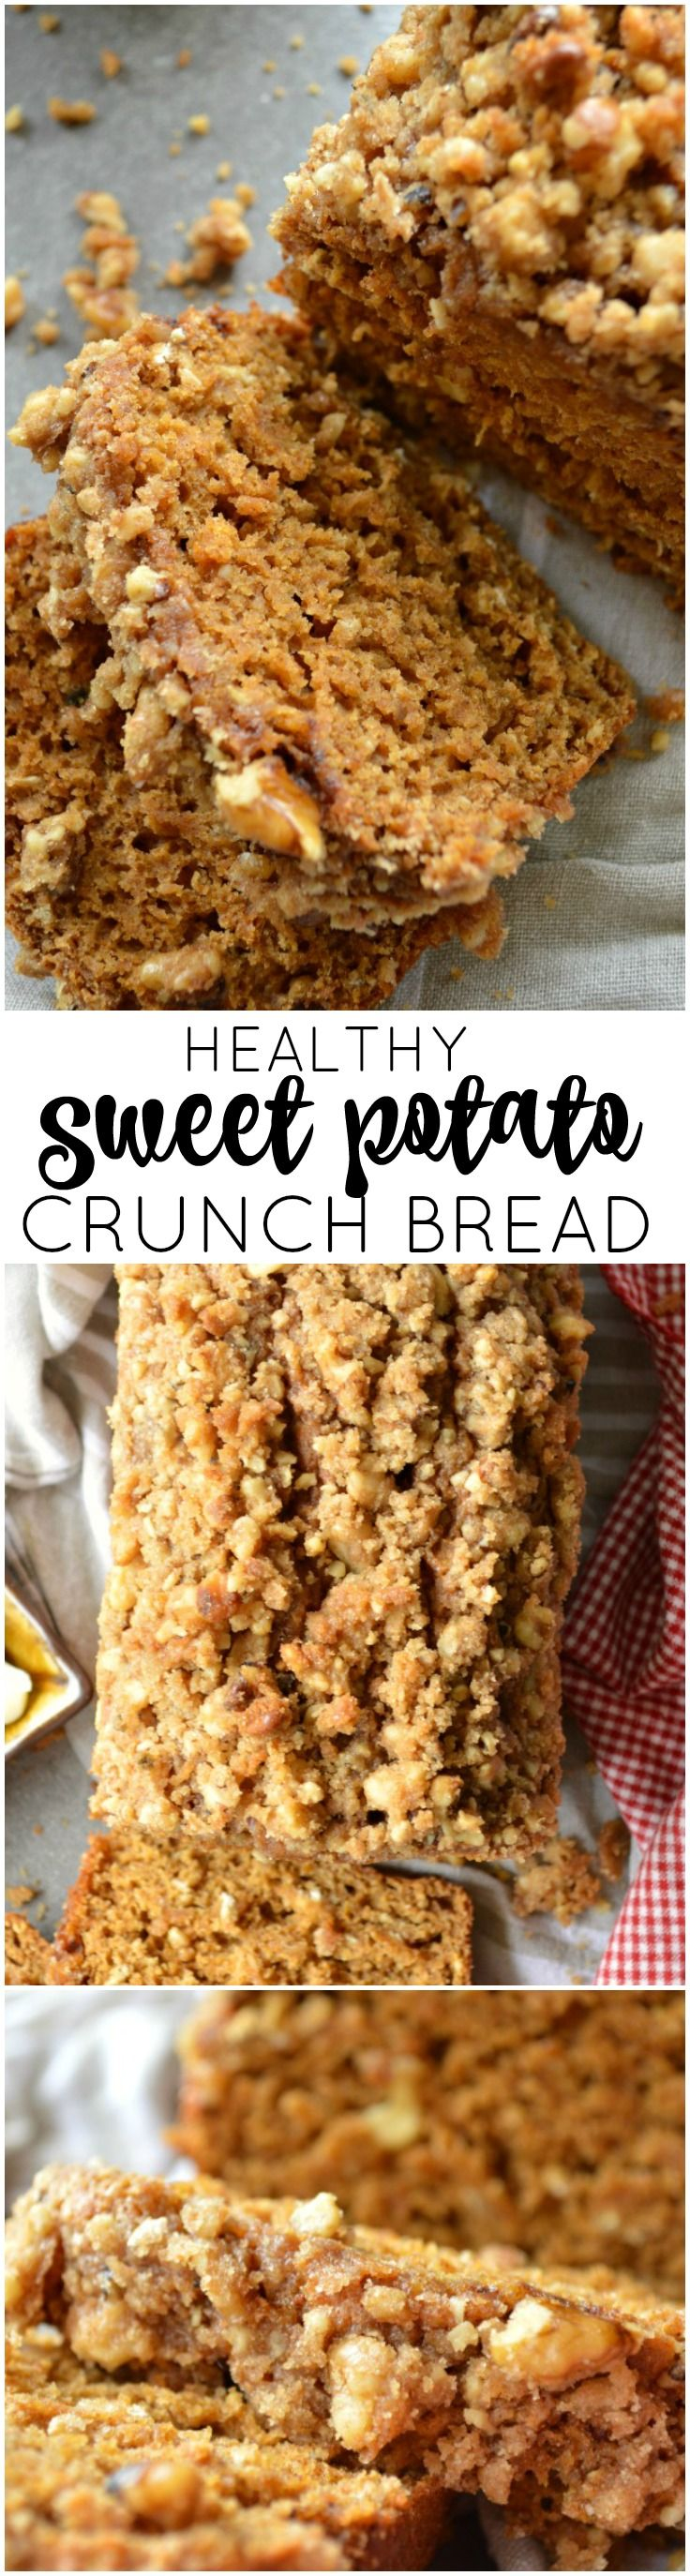 Healthy Sweet Potato Crunch Bread you can nosh on for breakfast, brunch, or every eating occasion in-between. A lightened up quick bread recipe you'll adore.